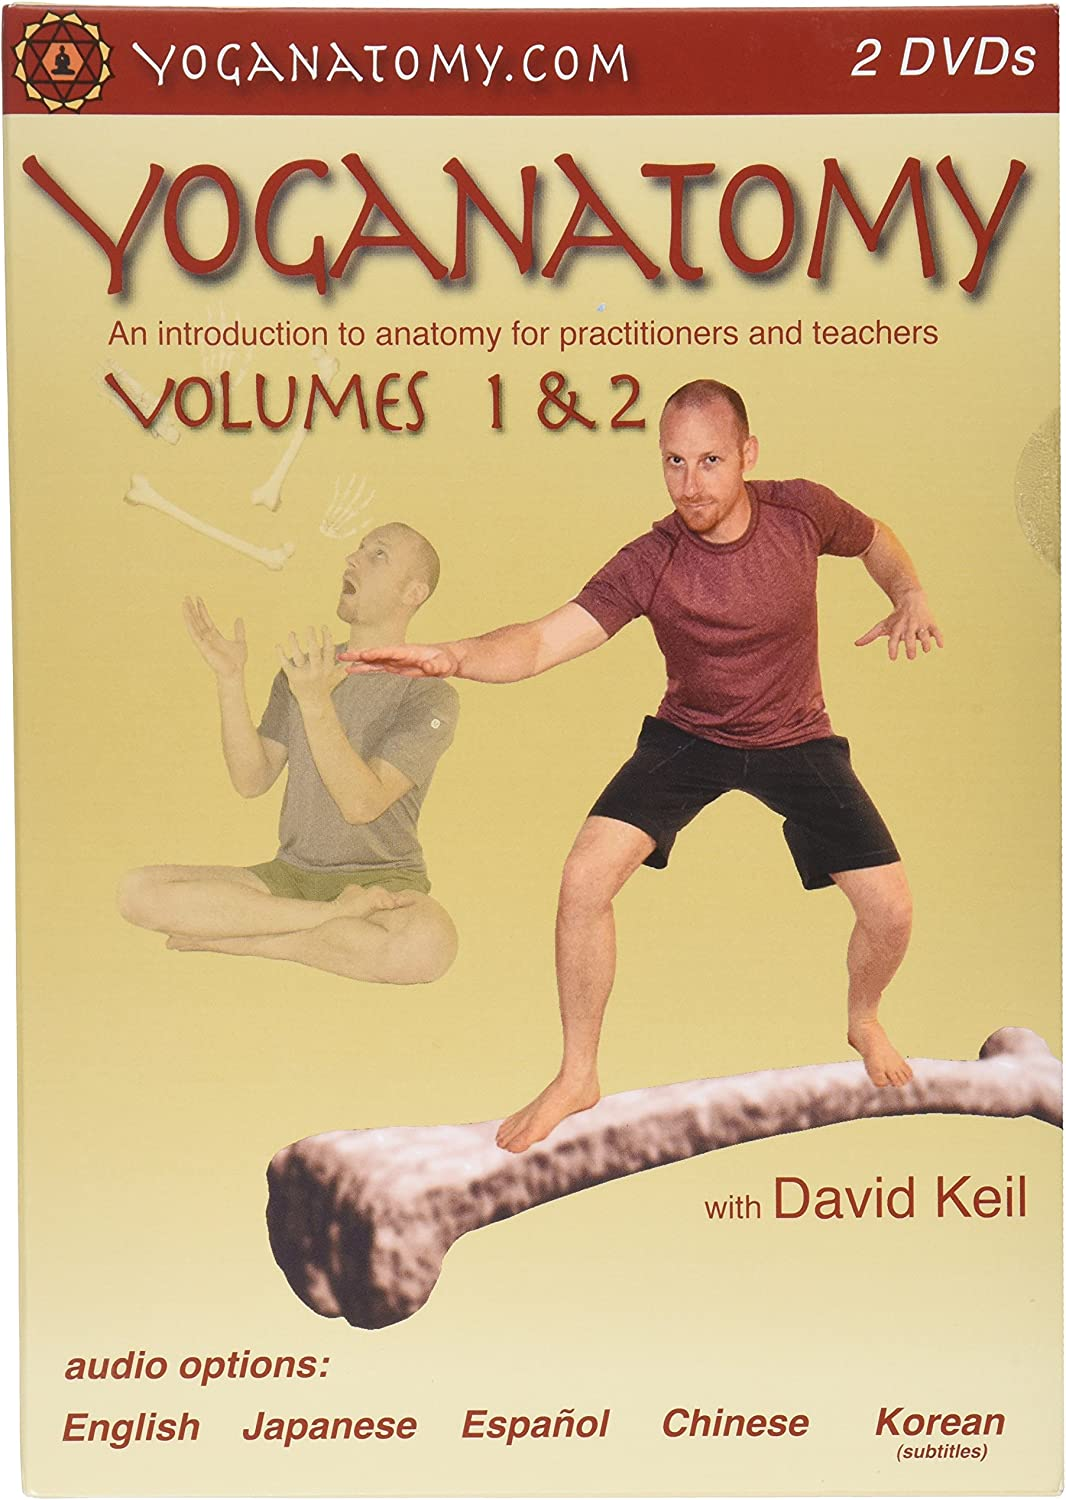 Yoganatomy, Vol. 1 & 2